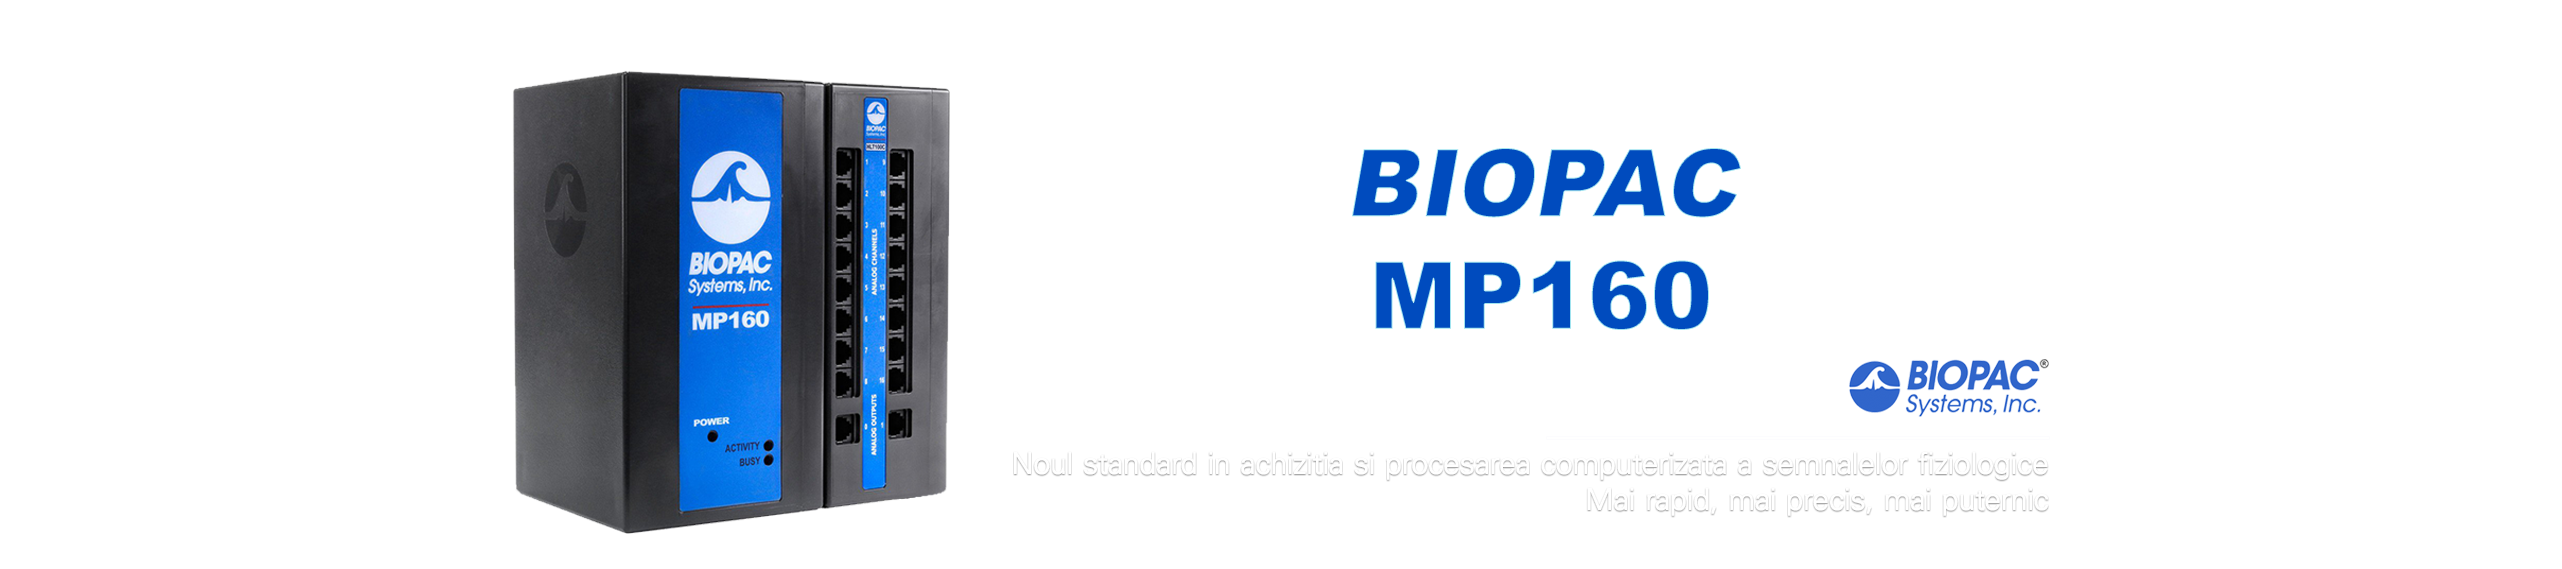 catalog/layerslider/5 Slidere 2017/Slider2_BIOPAC_MP160.png